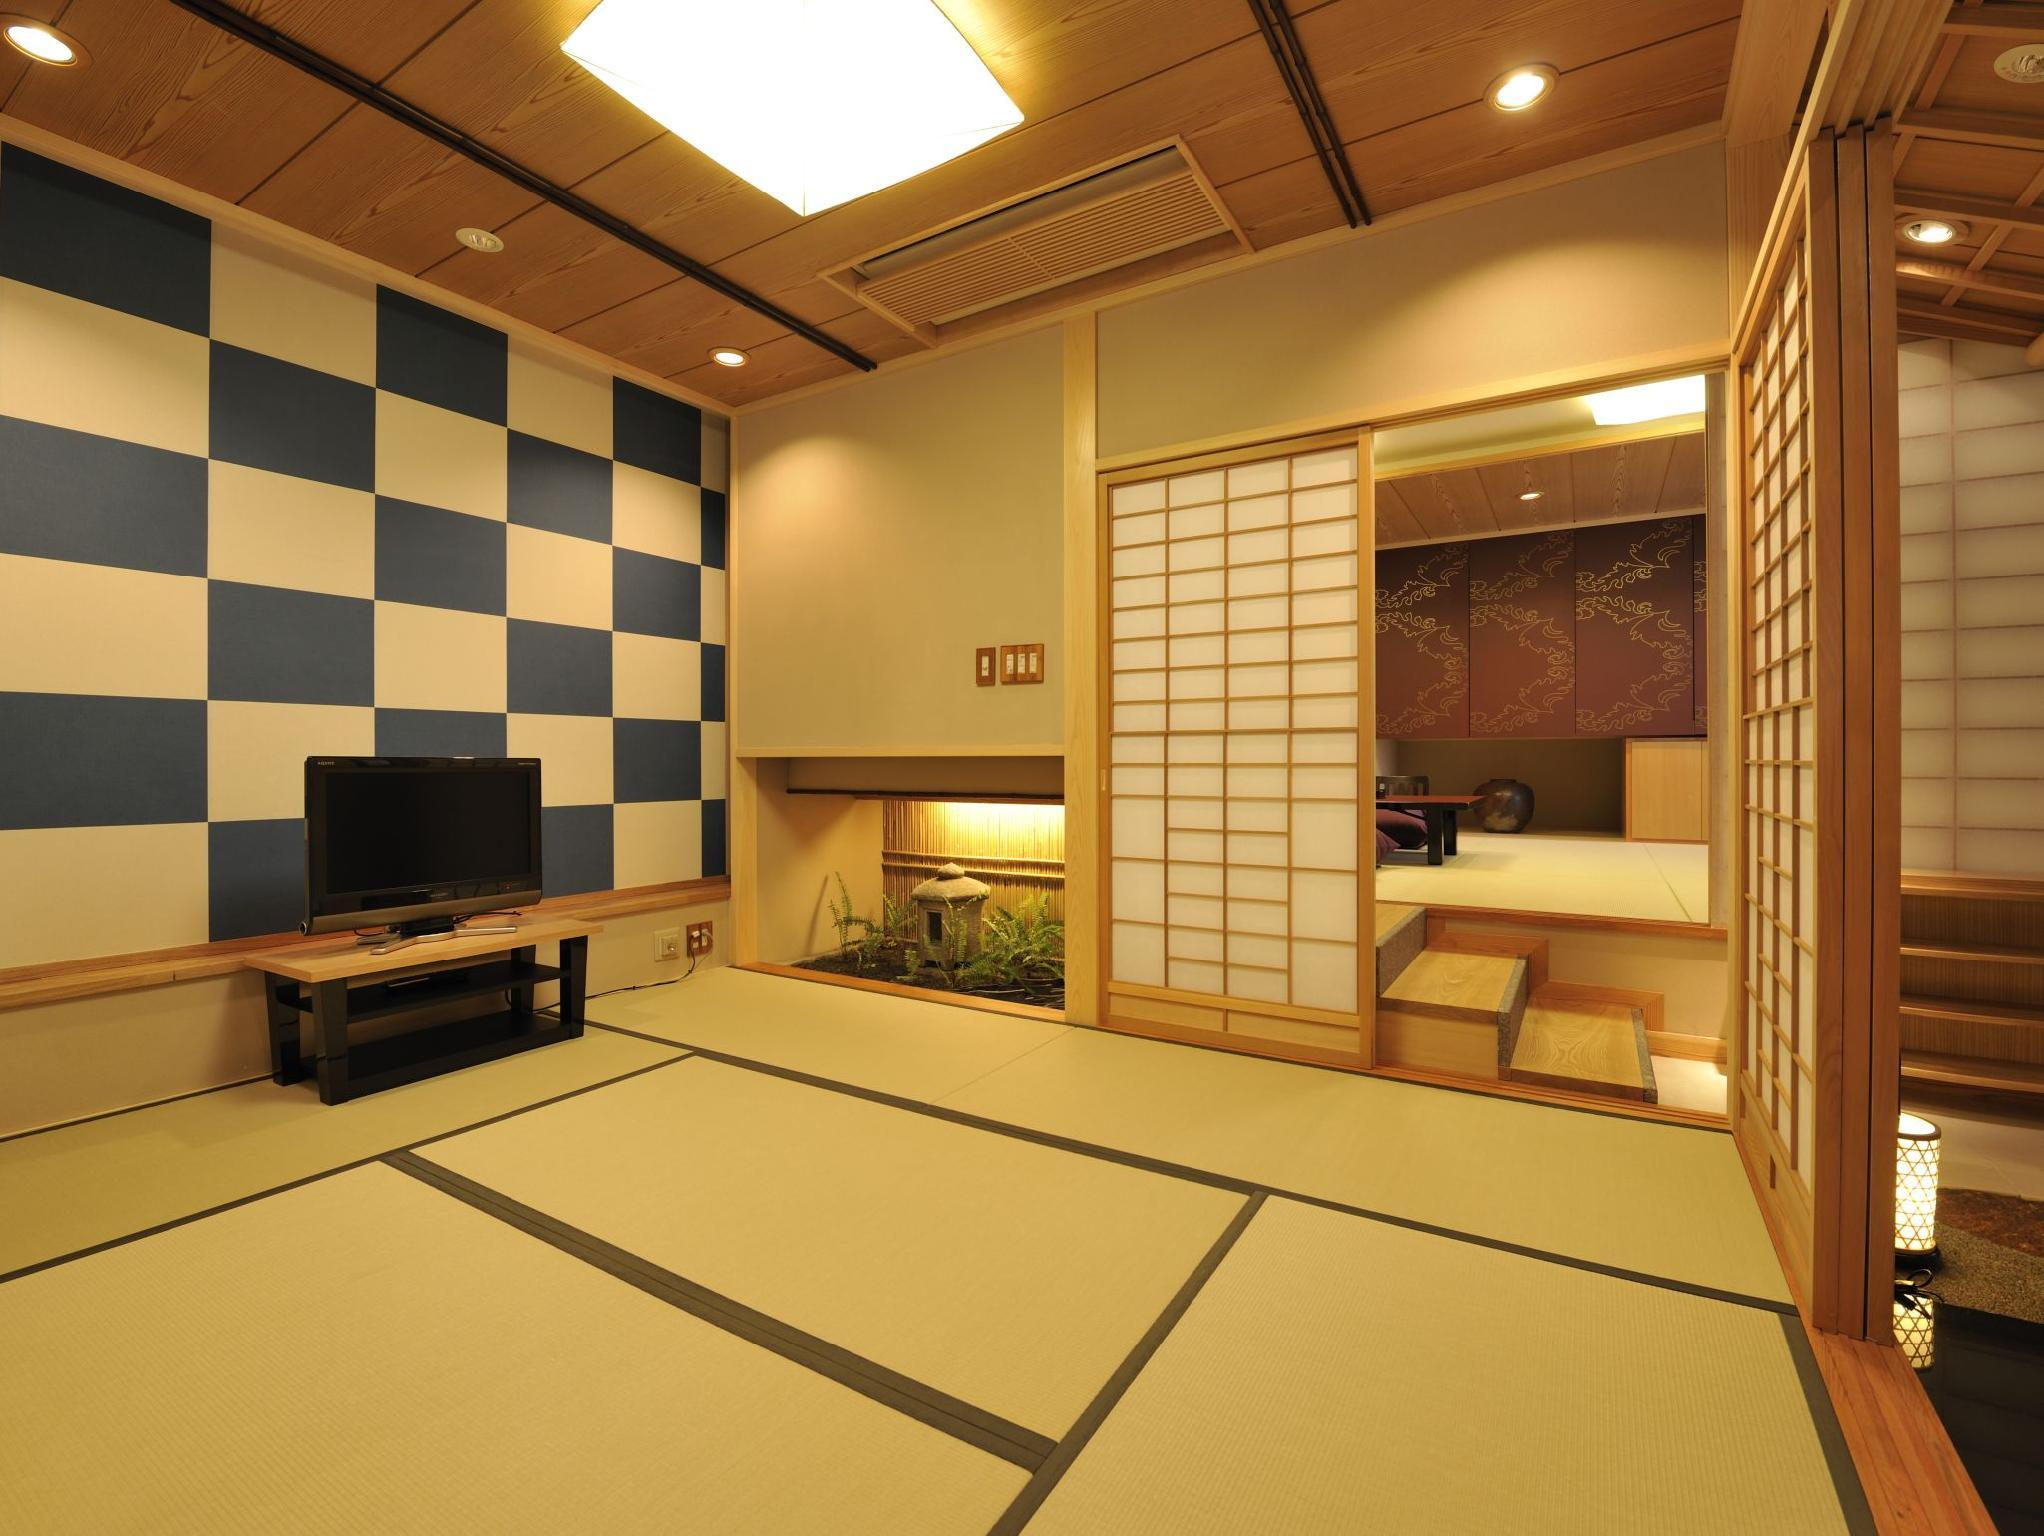 奢華日式客房 (Luxury Japanese Style Room)